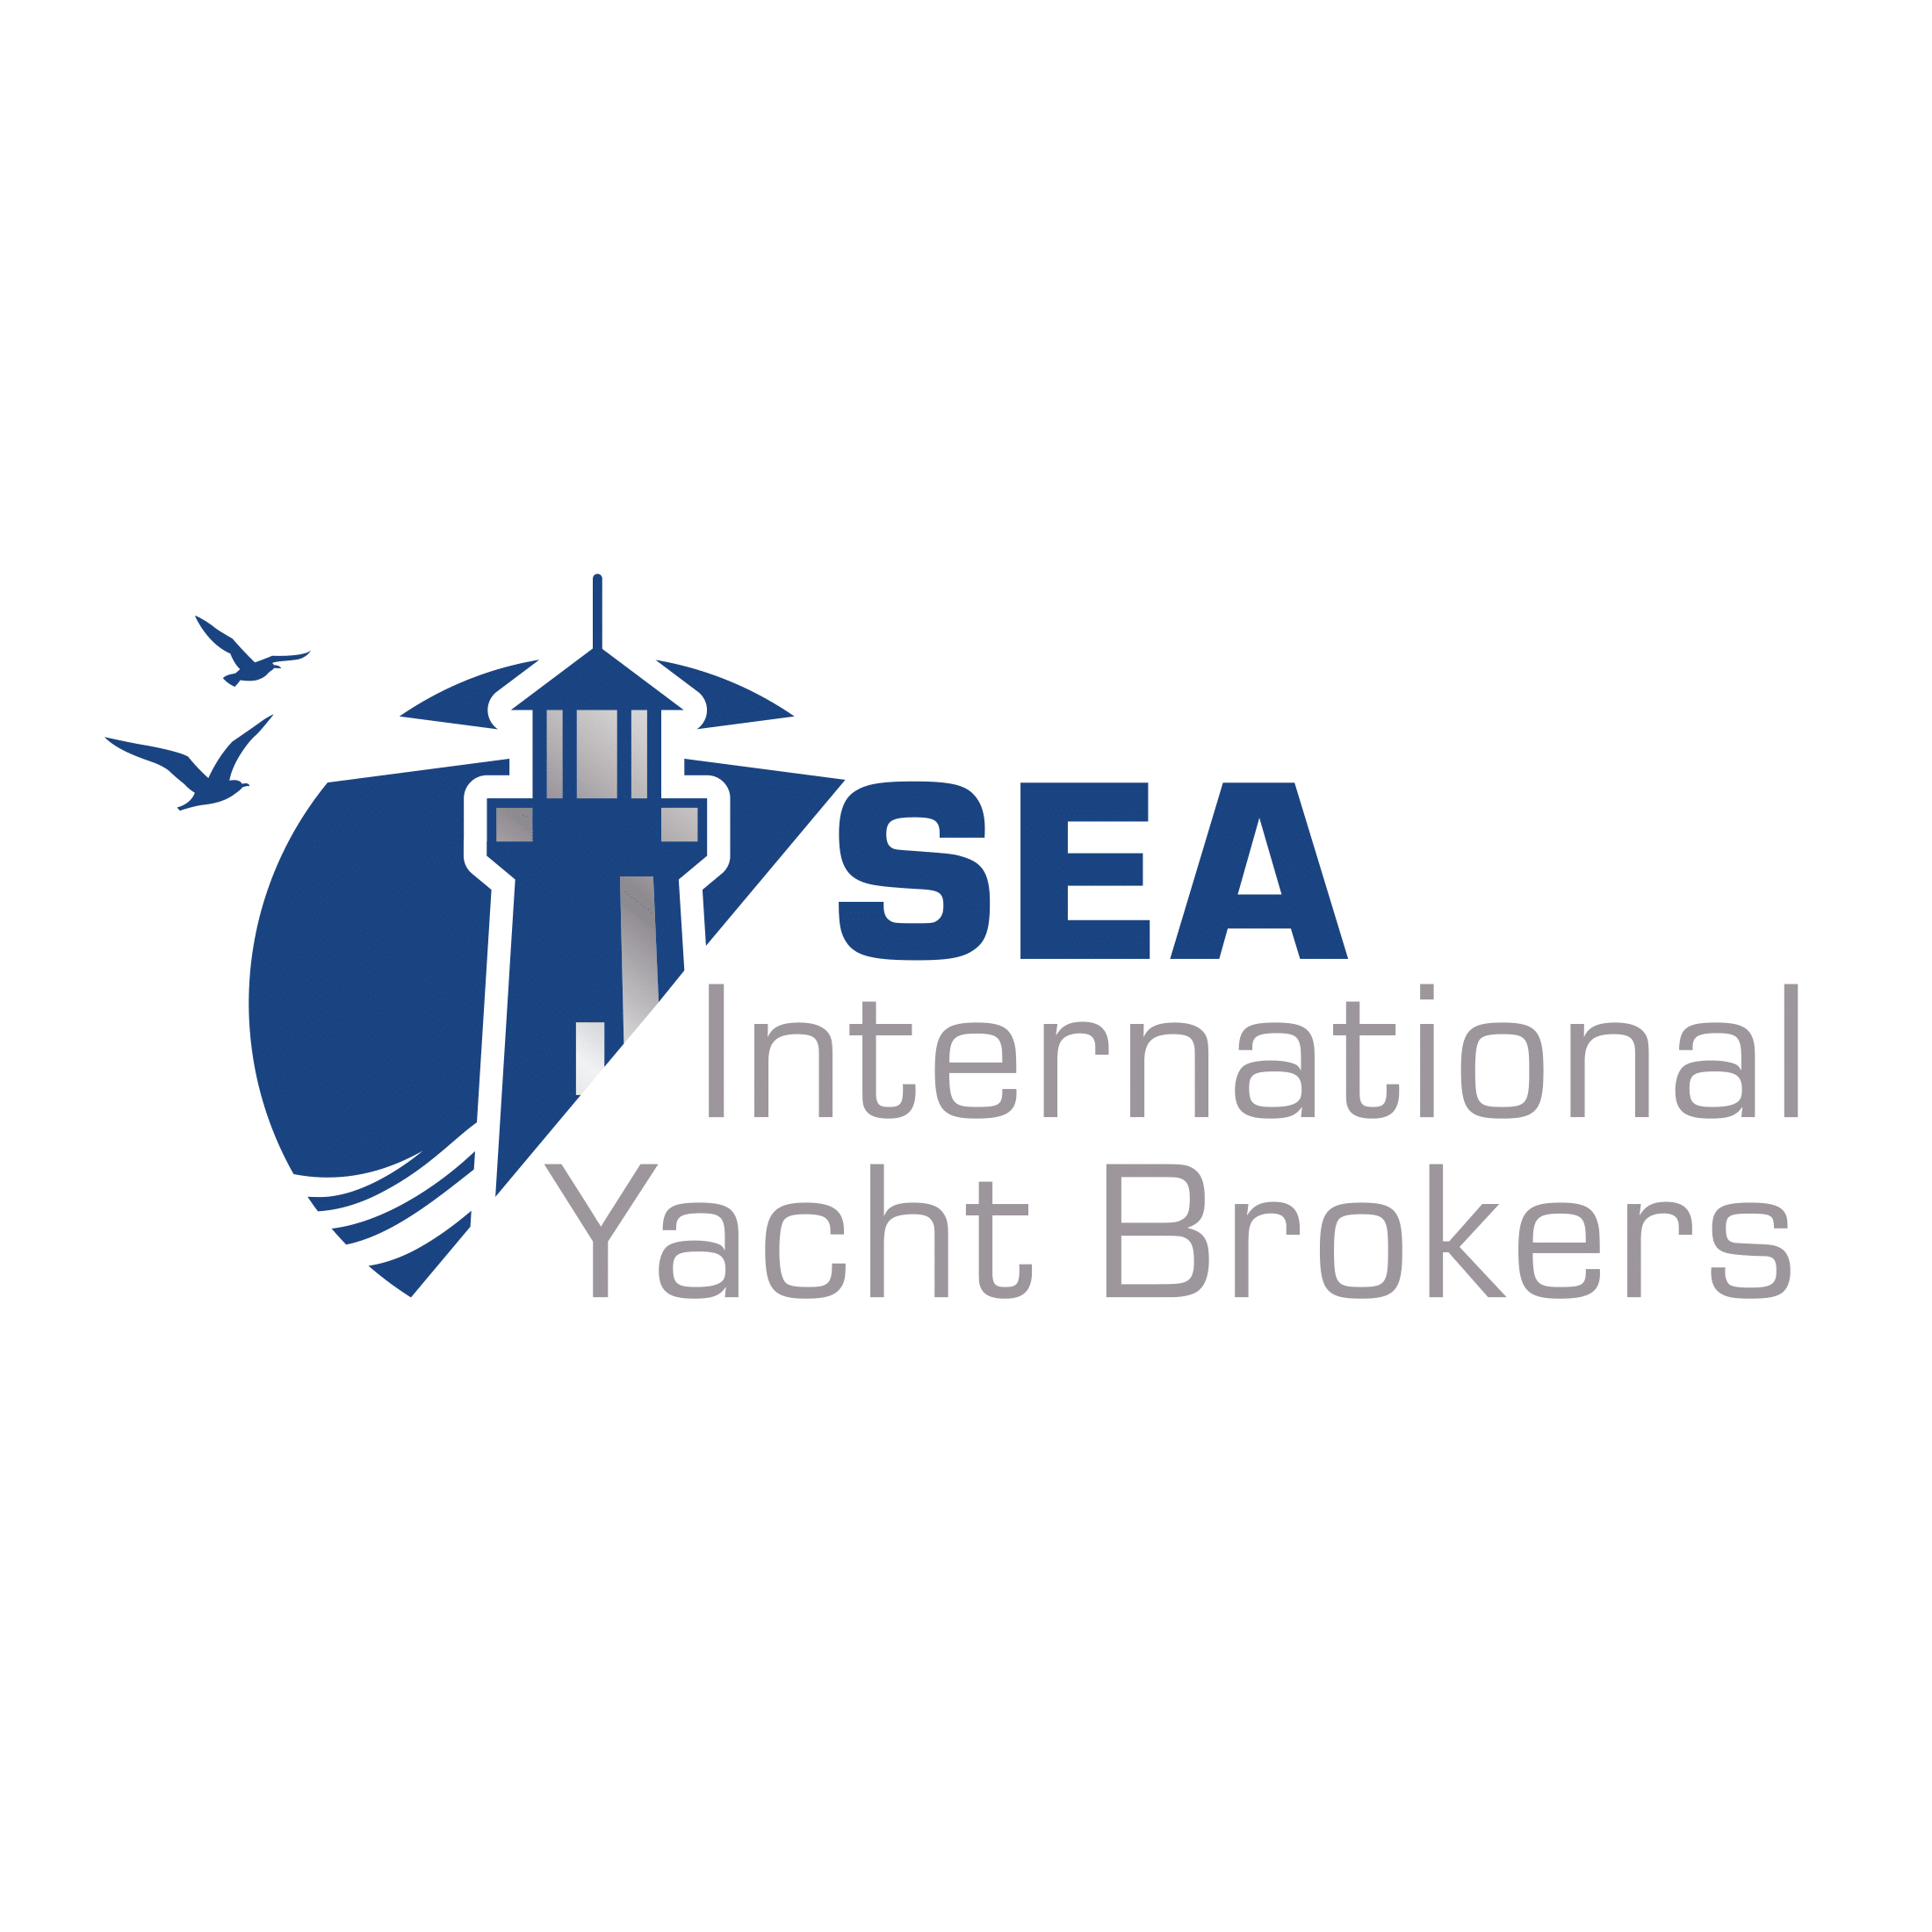 Sea International Yacht Brokerslogo